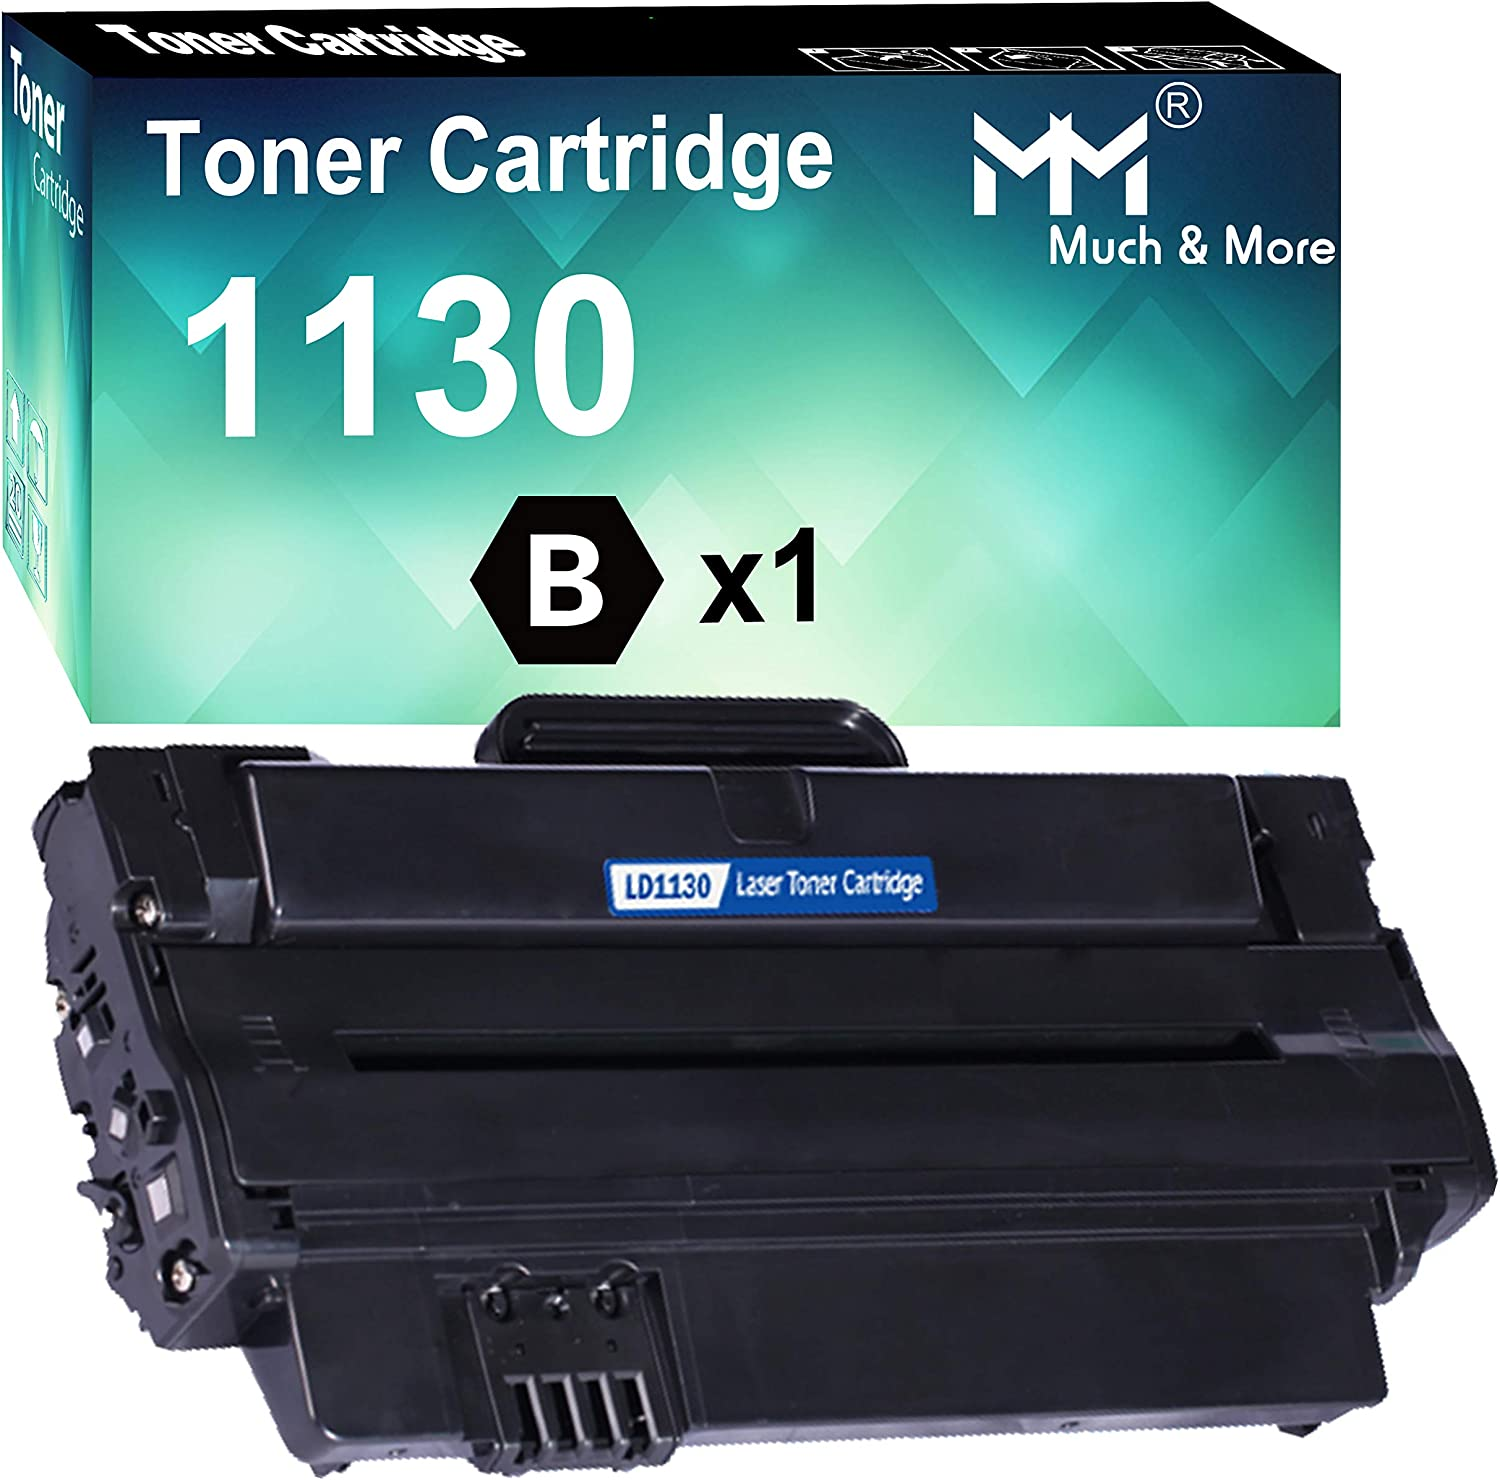 MM MUCH & MORE Compatible Toner Cartridge Replacement for DELL 330-9523 7H53W to Used with DELL 1130 1130n 1133 1135n Printers (Black, 1 Pack)